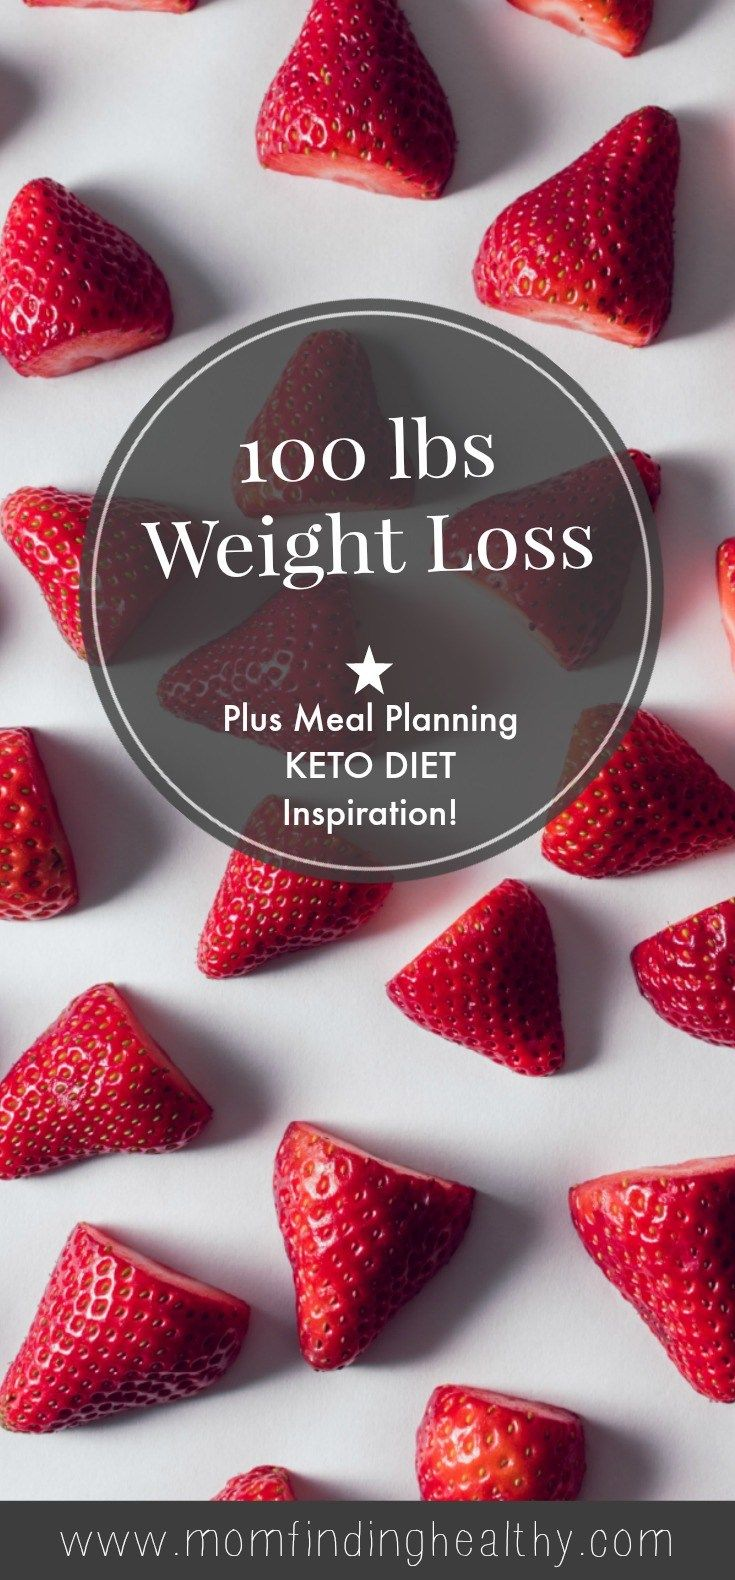 Weight Loss Before and After of an inspirational women who lost 100lbs with the keto diet. Ketosis Diet Foods - Meal Plan - Weight Loss - Health